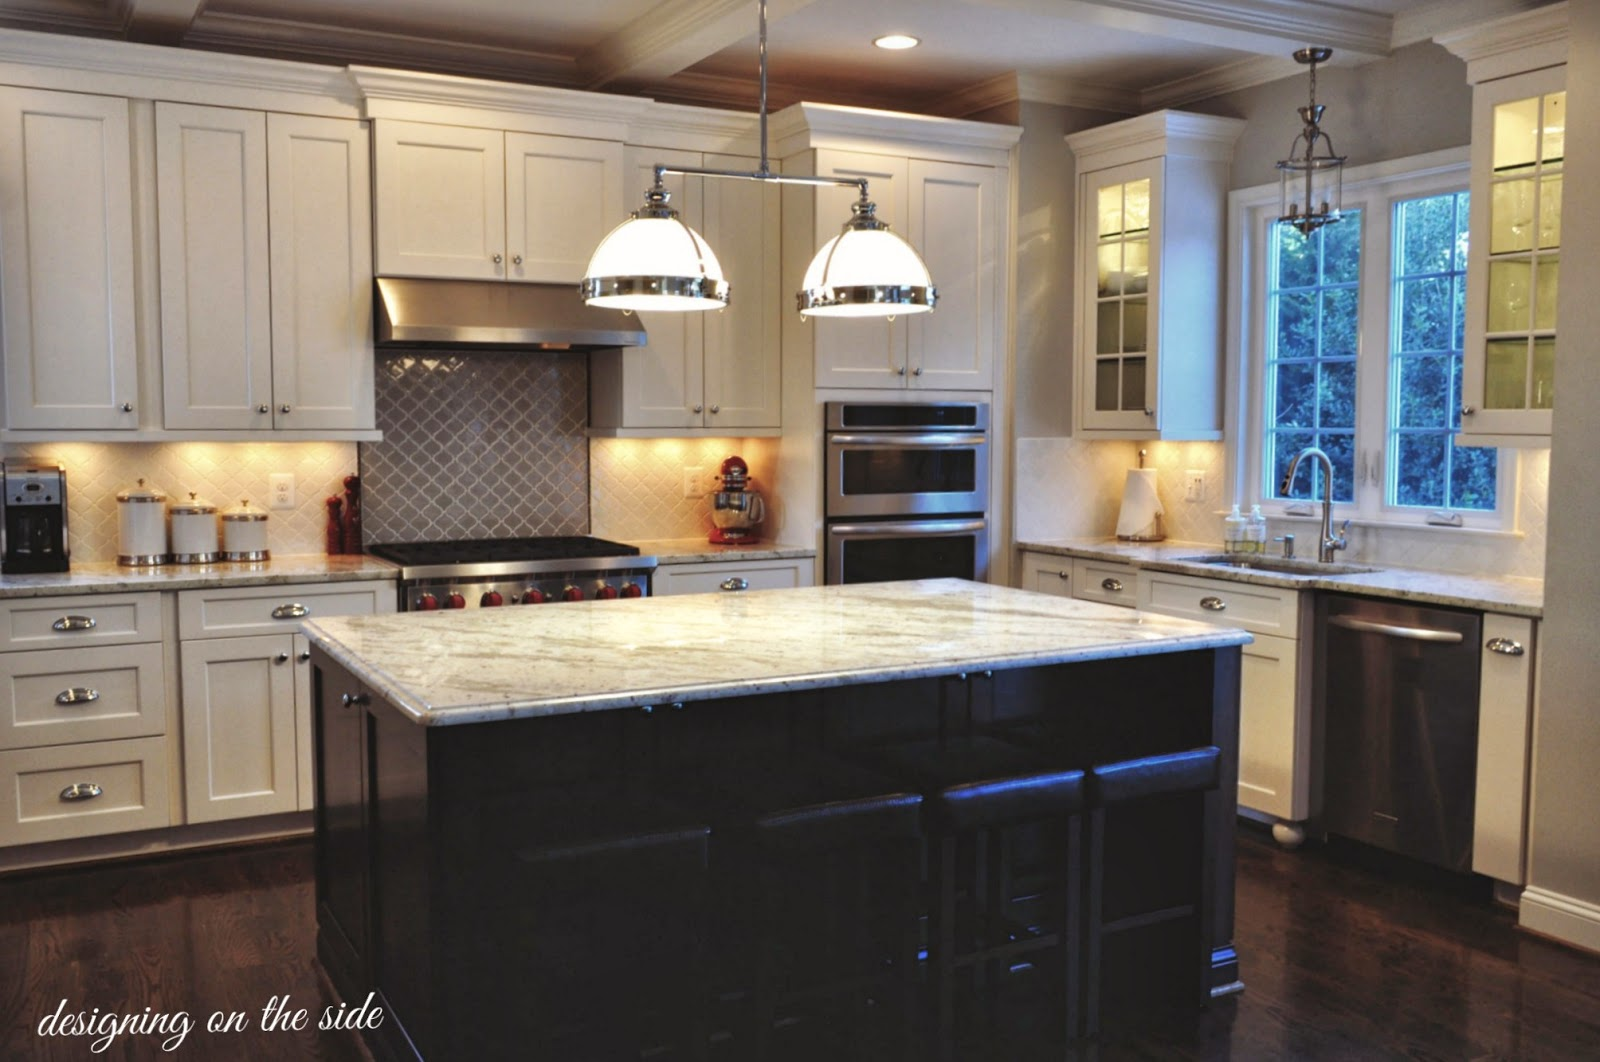 Designing on the side the kitchen of my dreamsterally wednesday march 5 mozeypictures Image collections